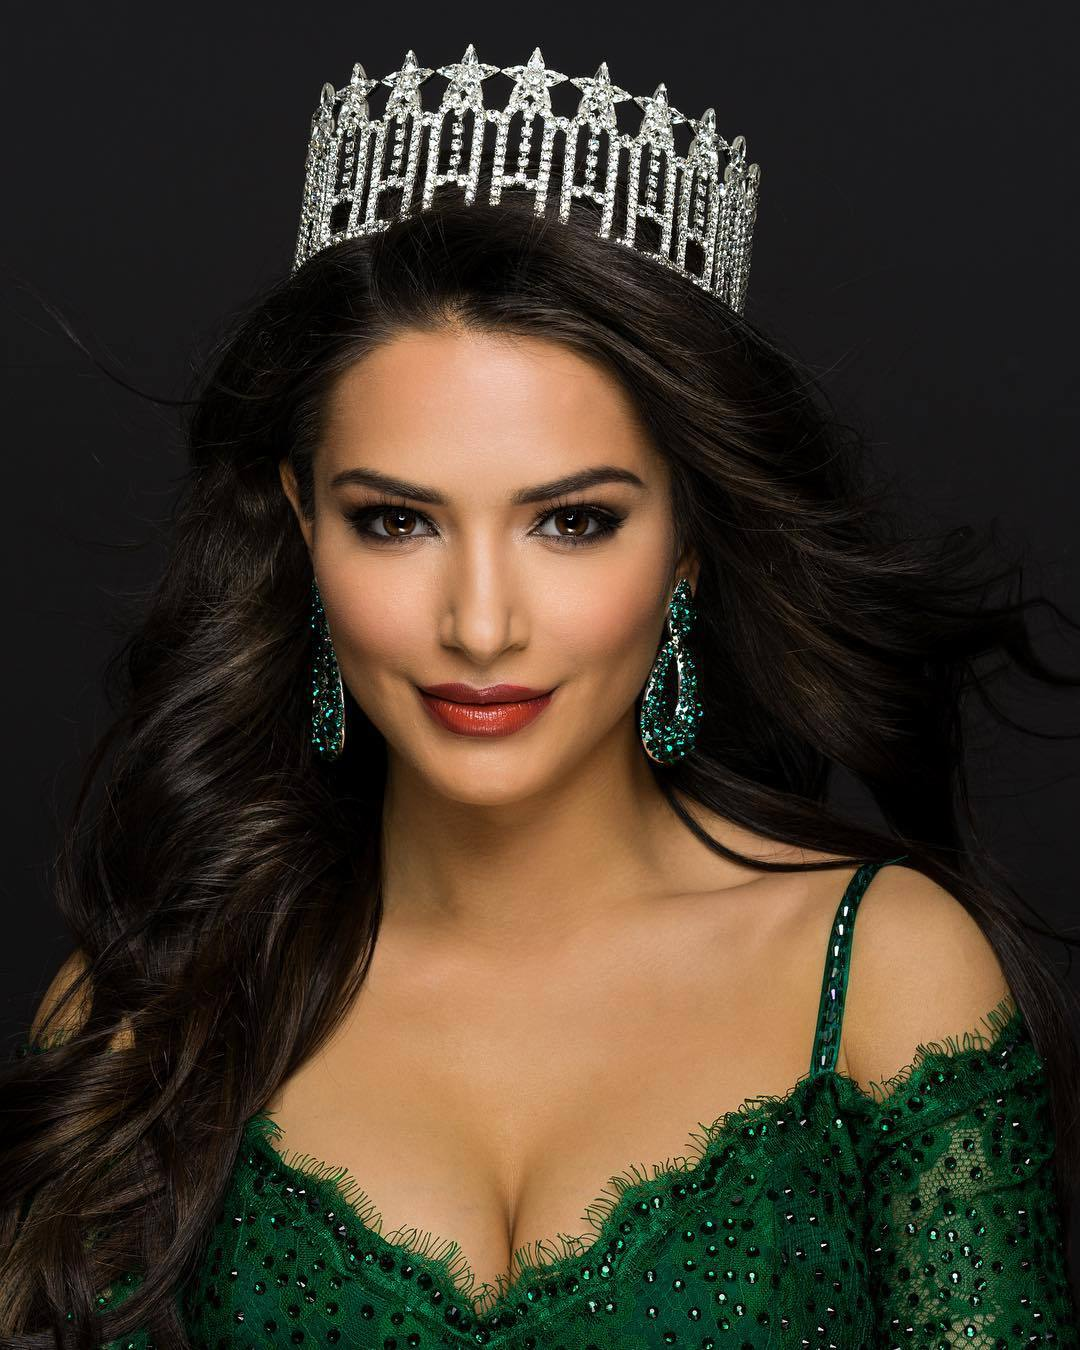 florinda kajtazi, miss new york 2019. 52038651_784732245238202_1881639390789309531_n